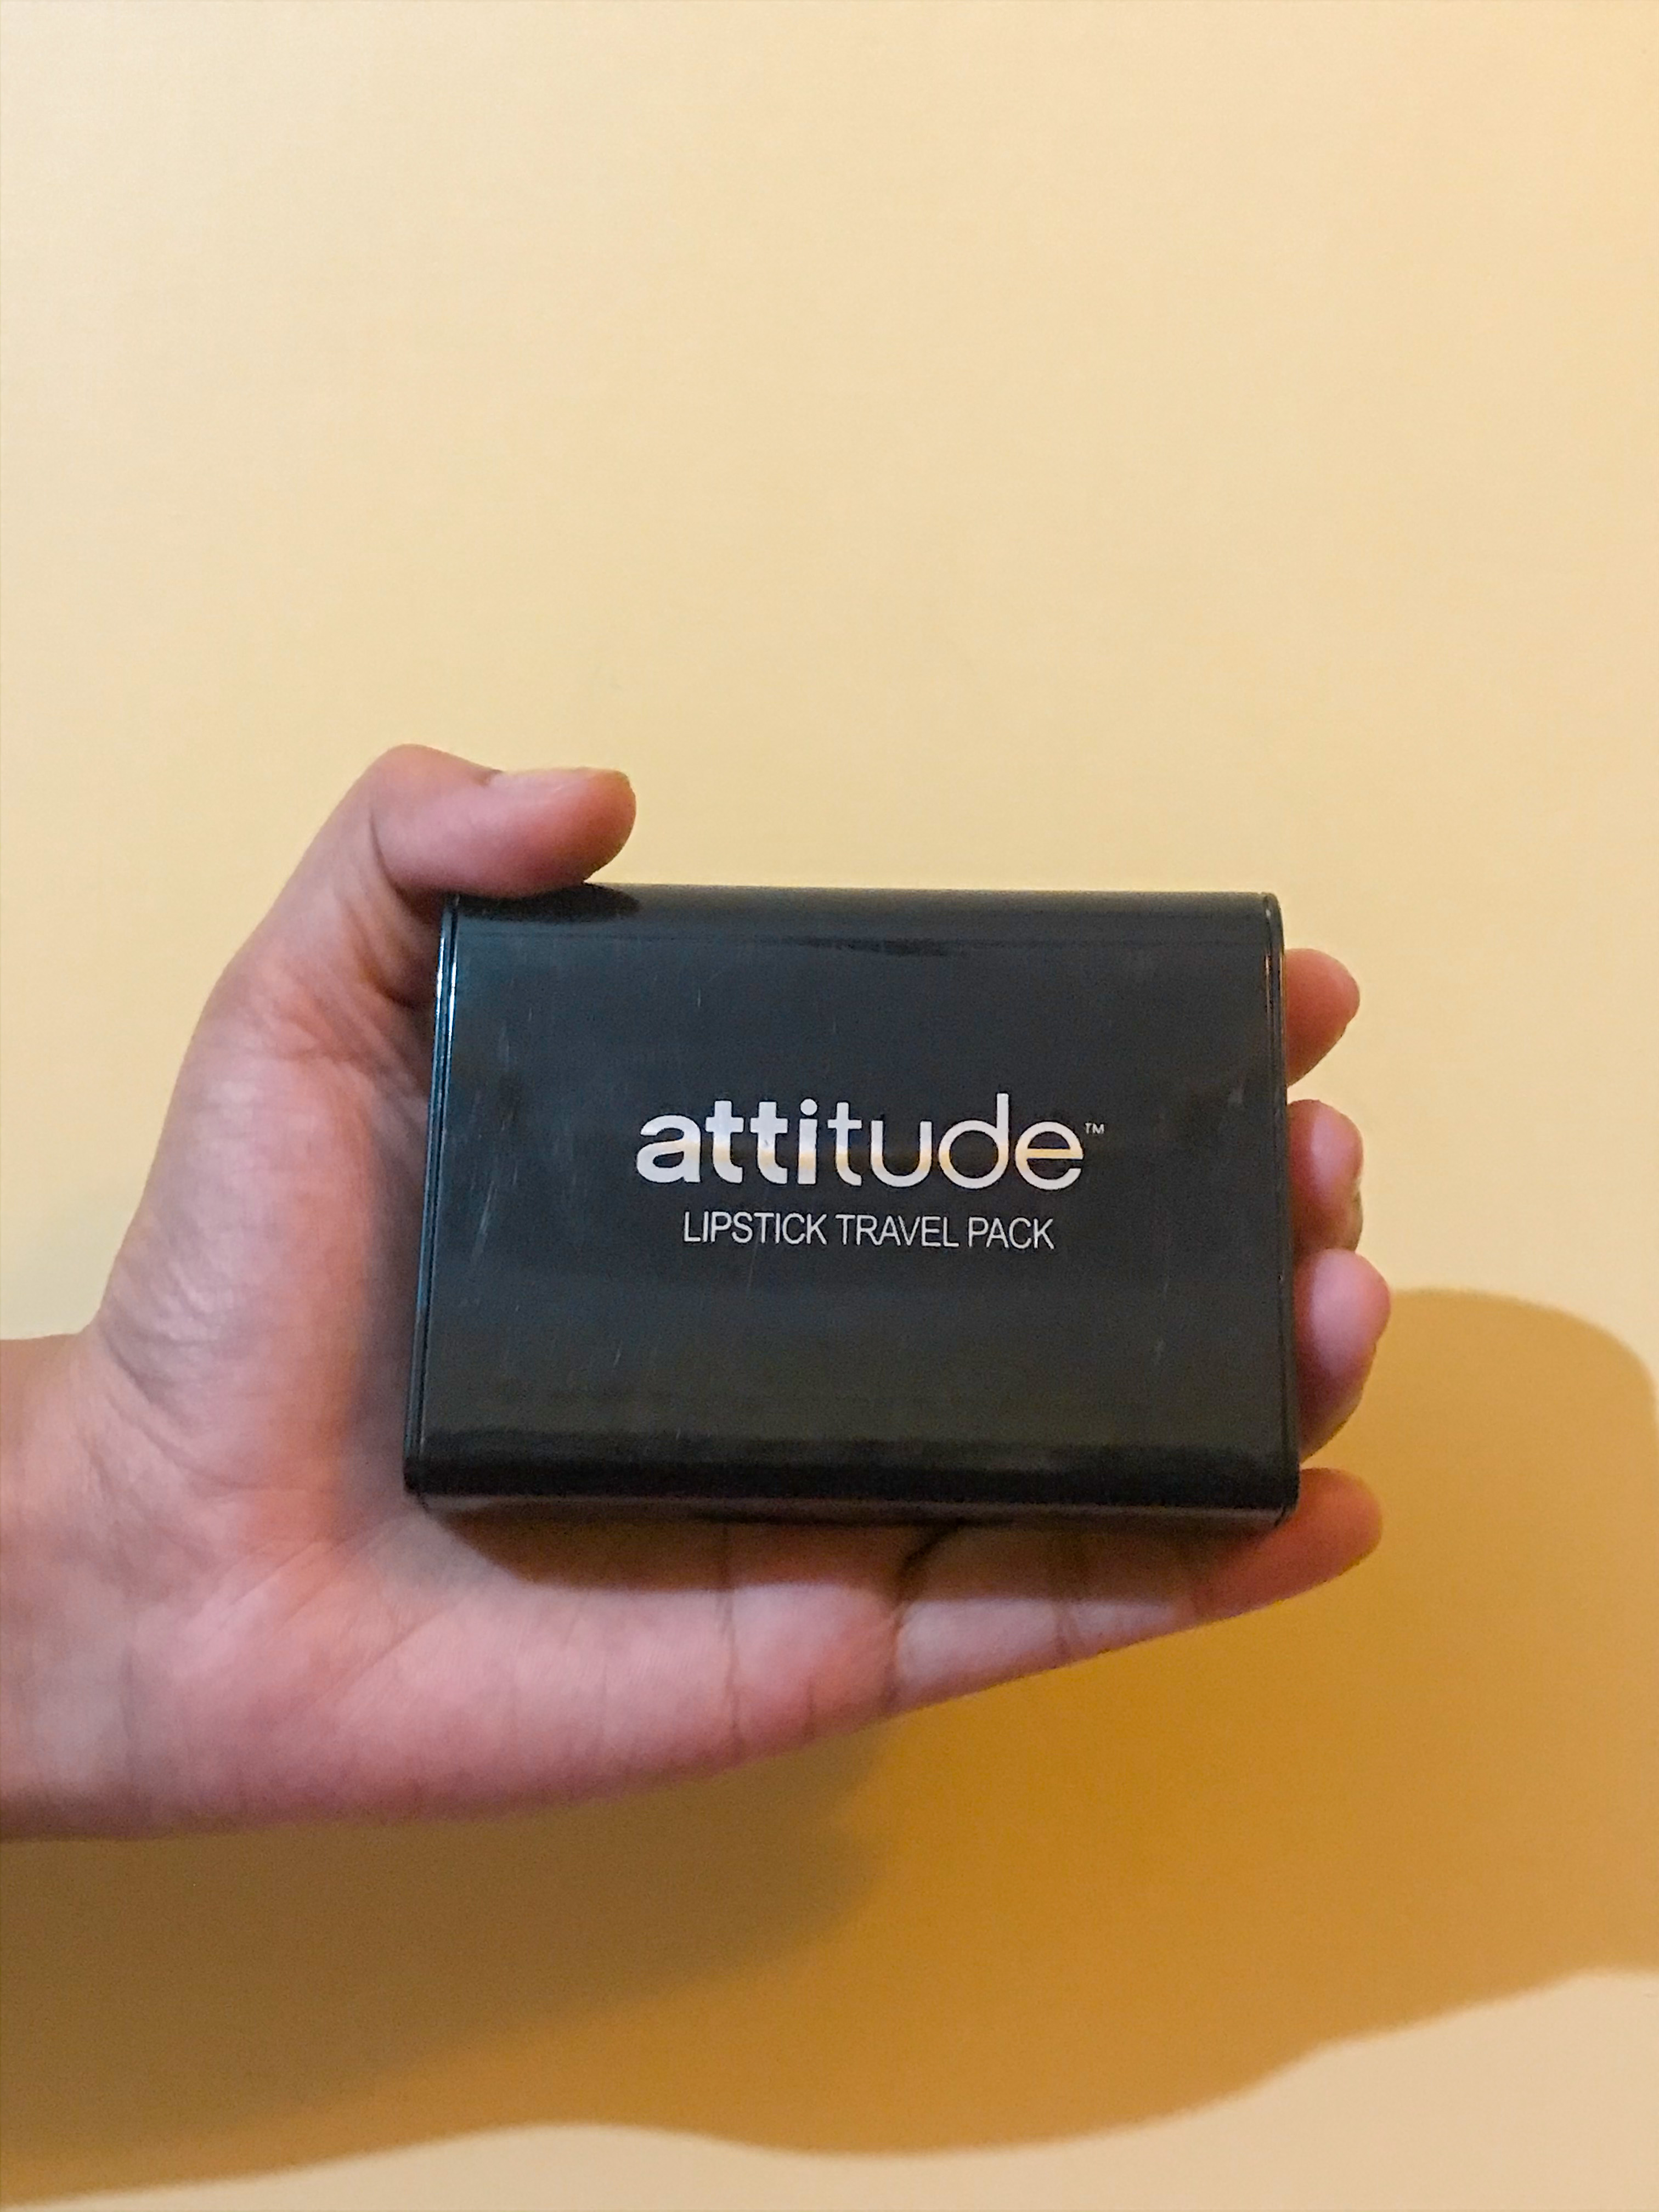 Amway Attitude Lipstick Travel Pack-Hassle free make up-By tanuagni